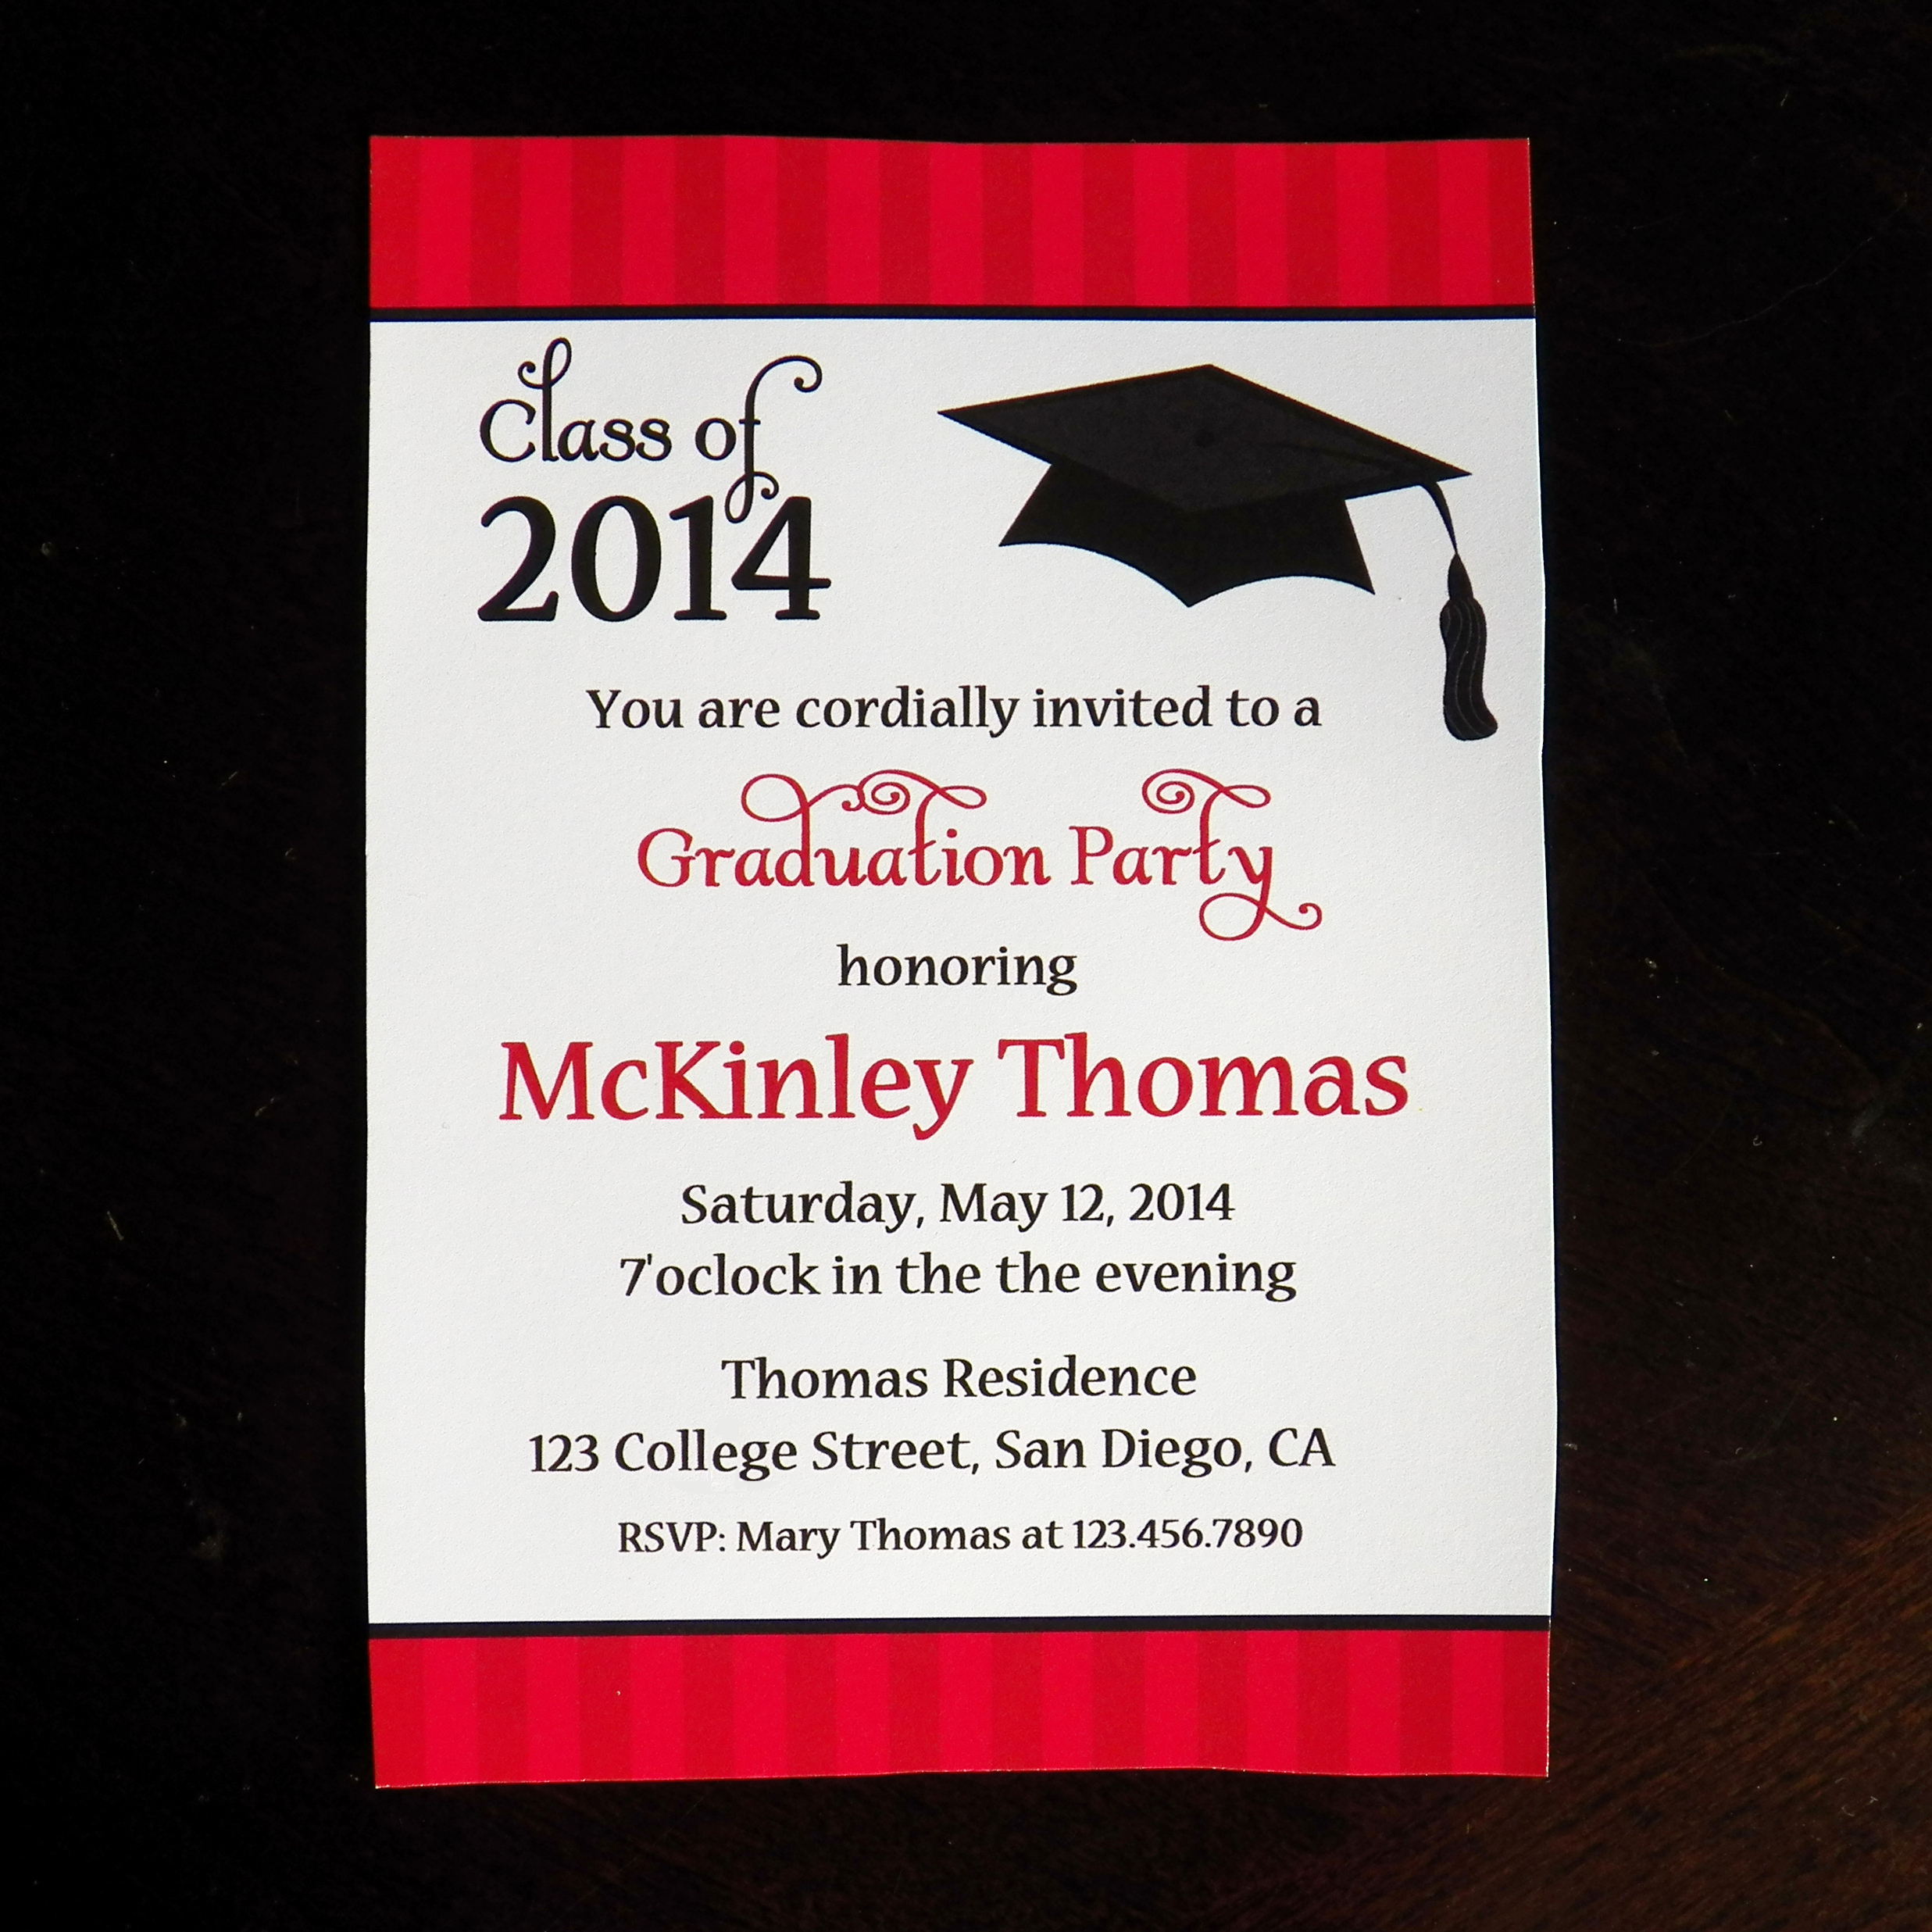 Graduation Celebration Invitation Templates Best Of Graduation Party Hats F to Mckinley that Party Chick